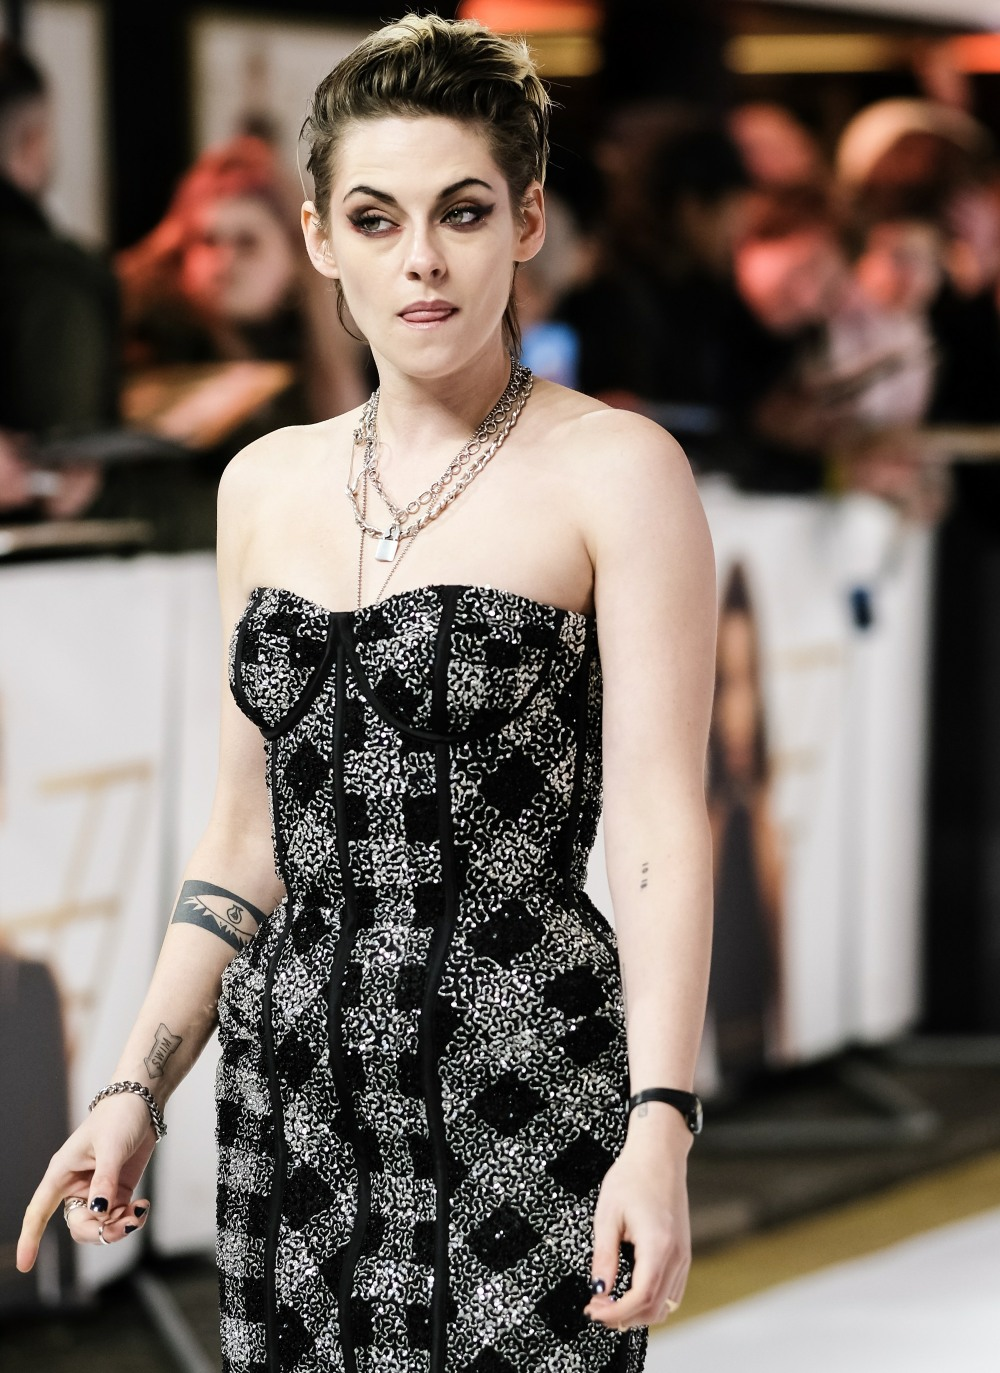 Kristen Stewart poses at the Charile's Angels UK Premiere on Wednesday 20 November 2019